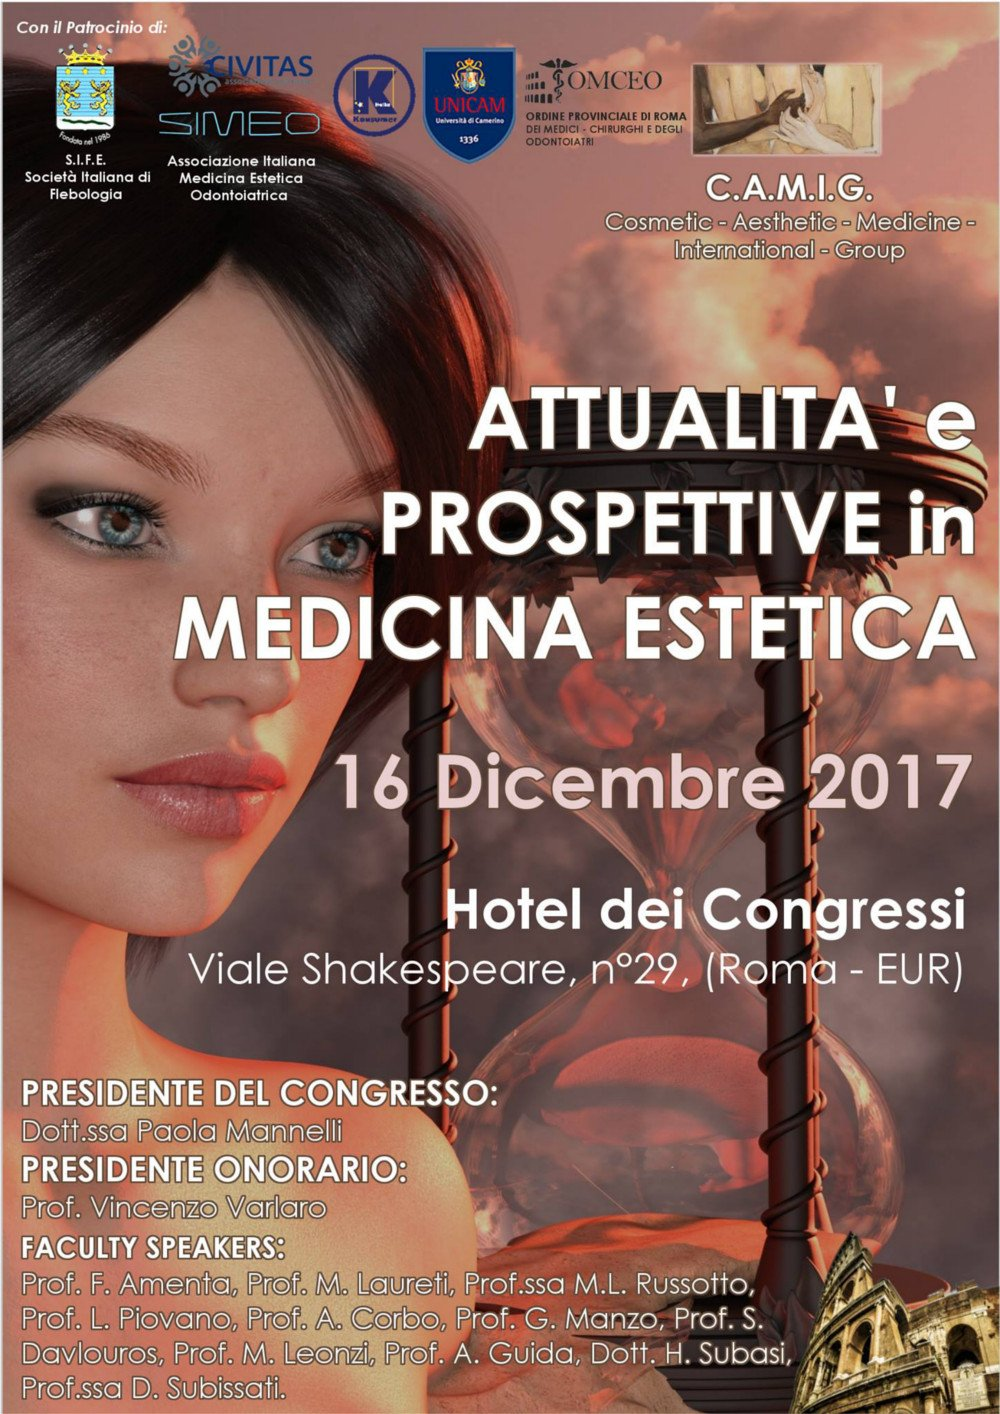 Cosmetic Aesthetic Medicine International Group | 16.12.17 | 1